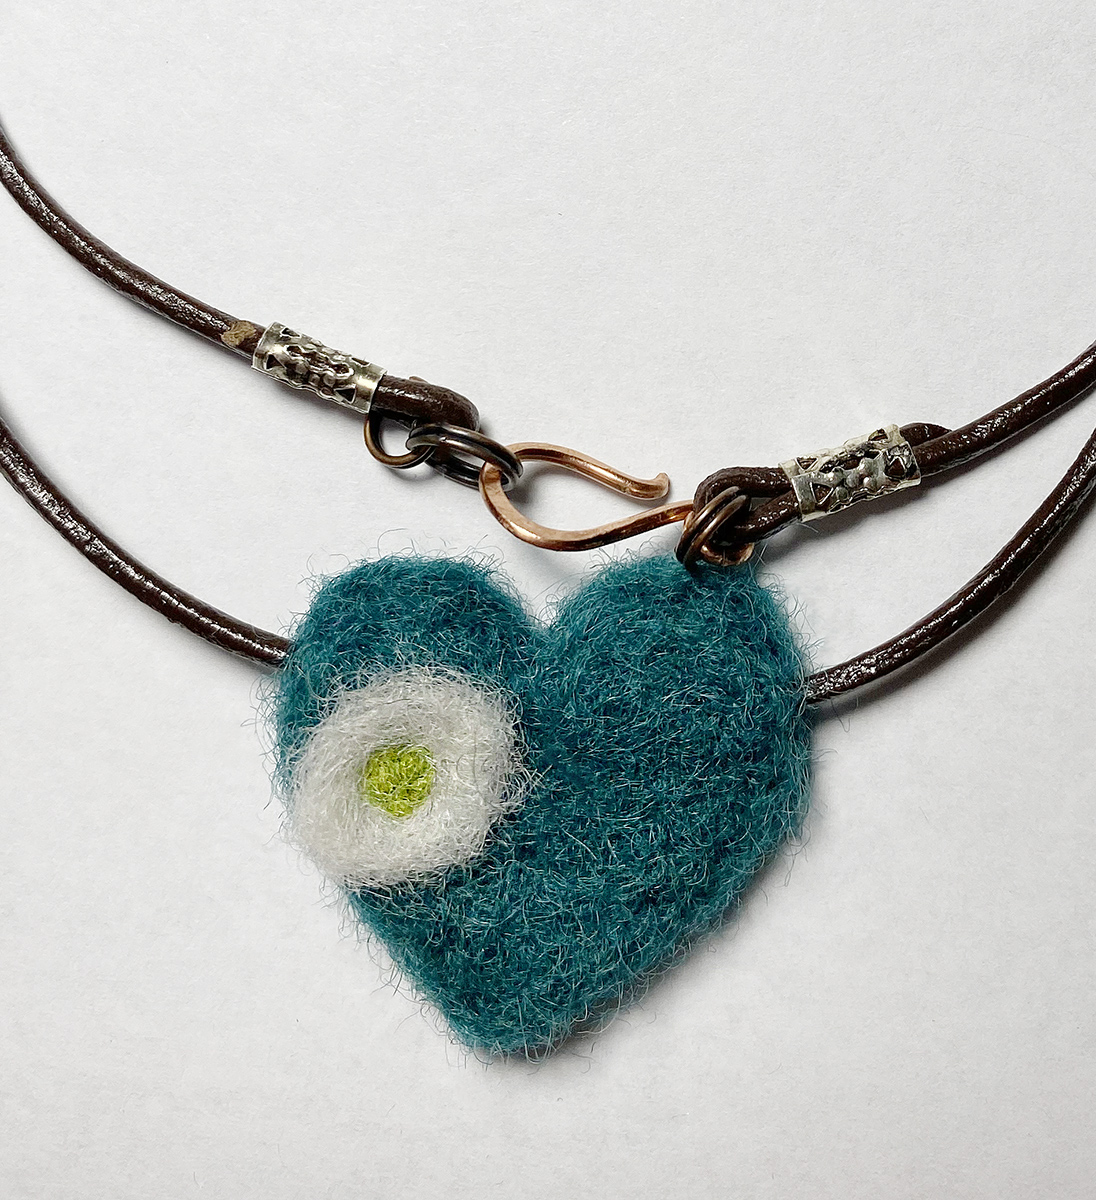 Needle felted Hearts and Flowers necklace in turquoise